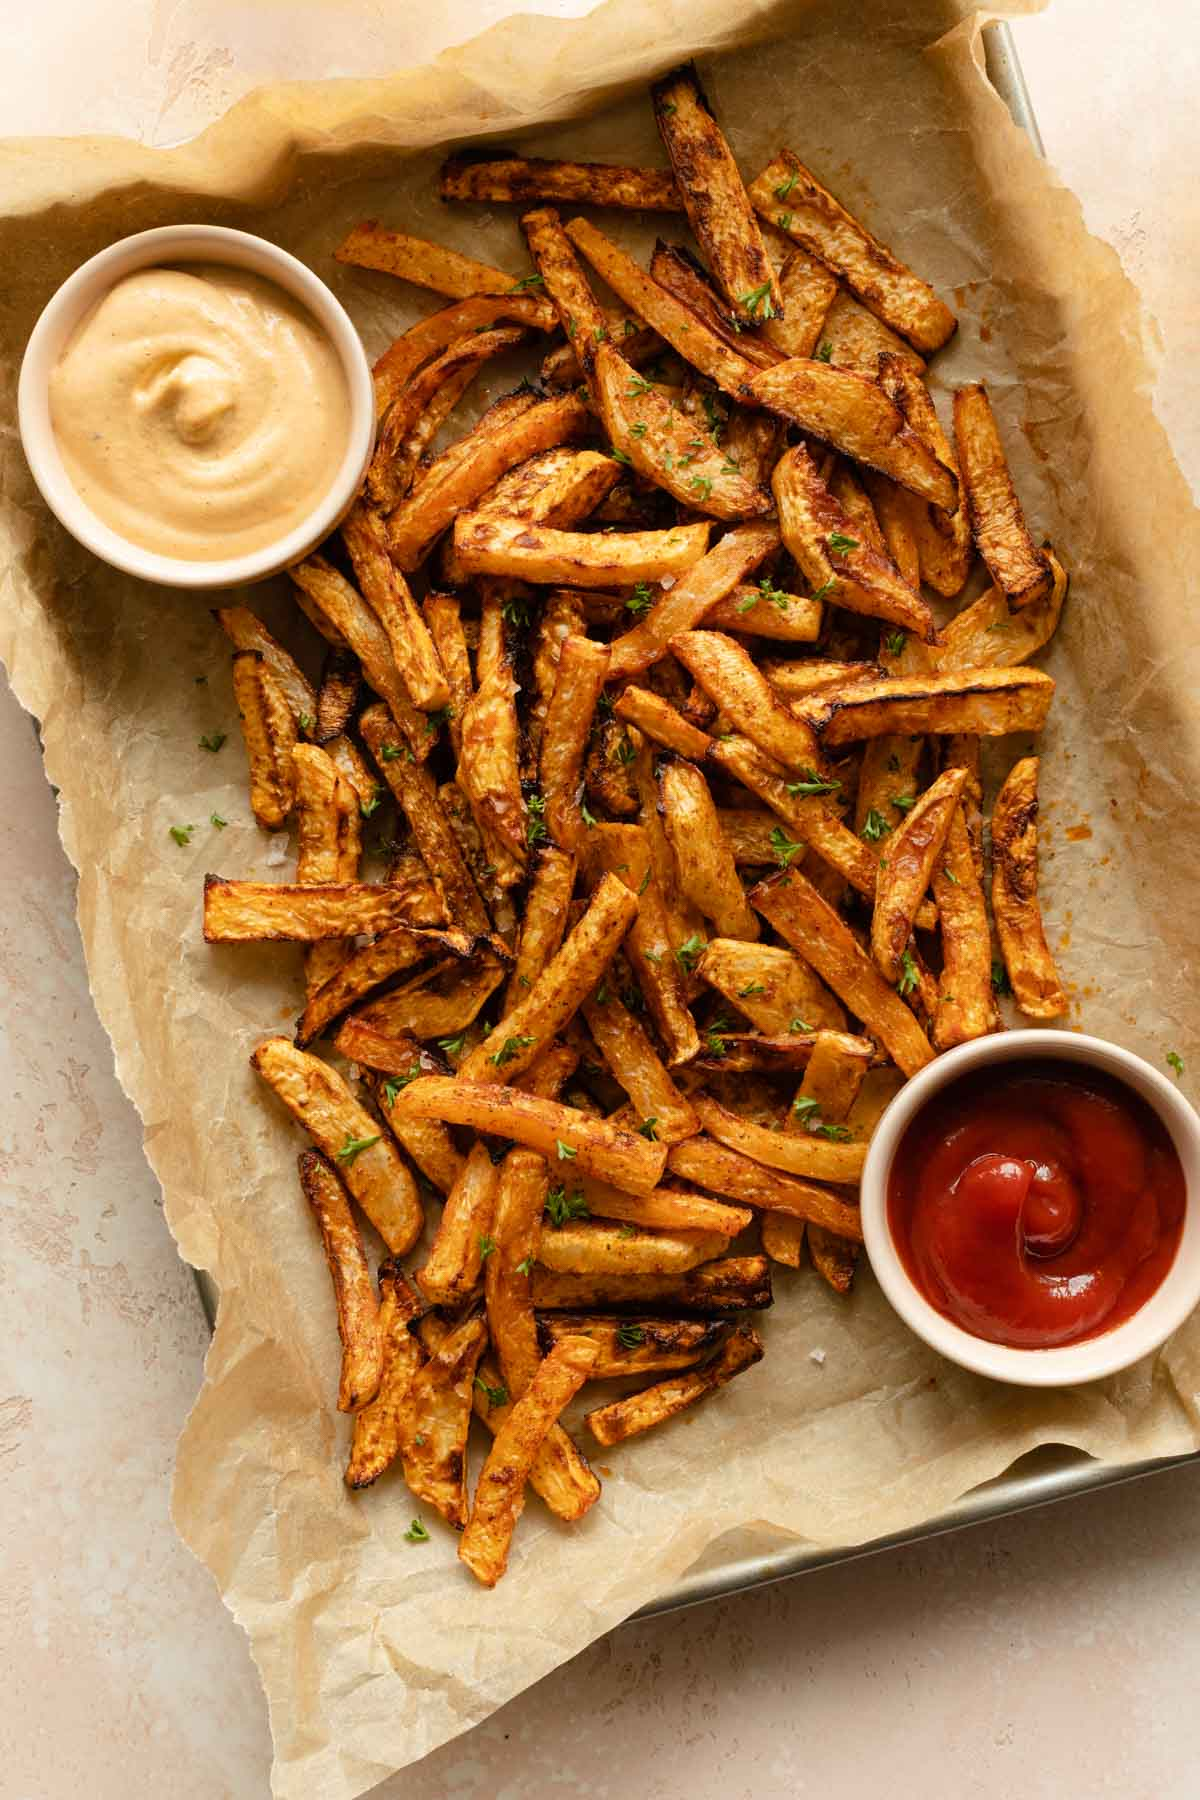 Turnip fries served on a tray with some dips.